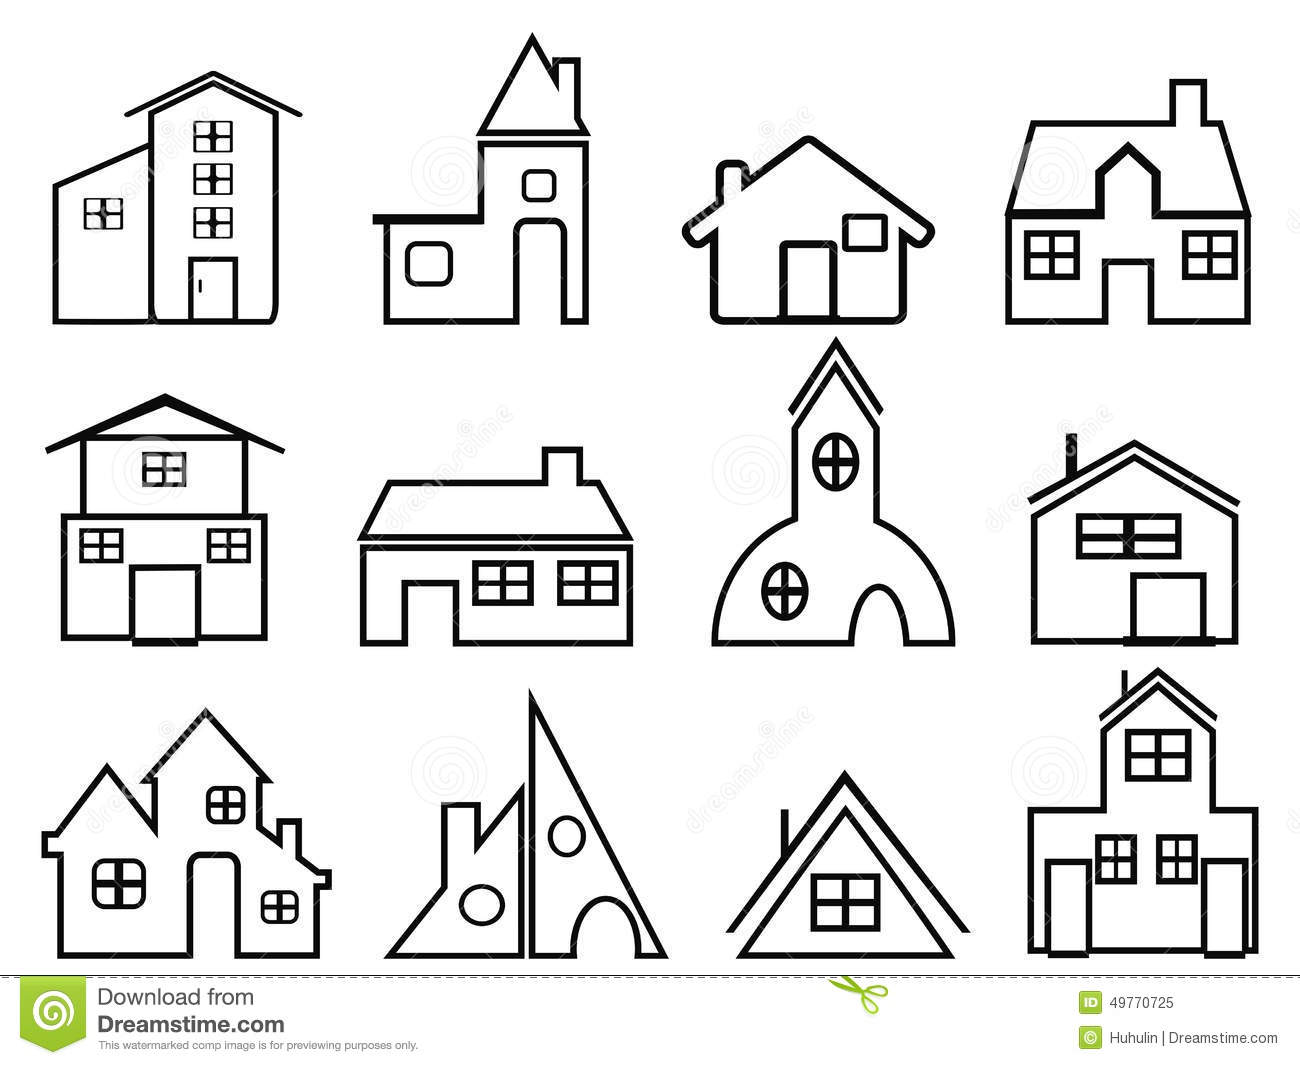 House outline picture - Royalty Free Vector Download House Outline